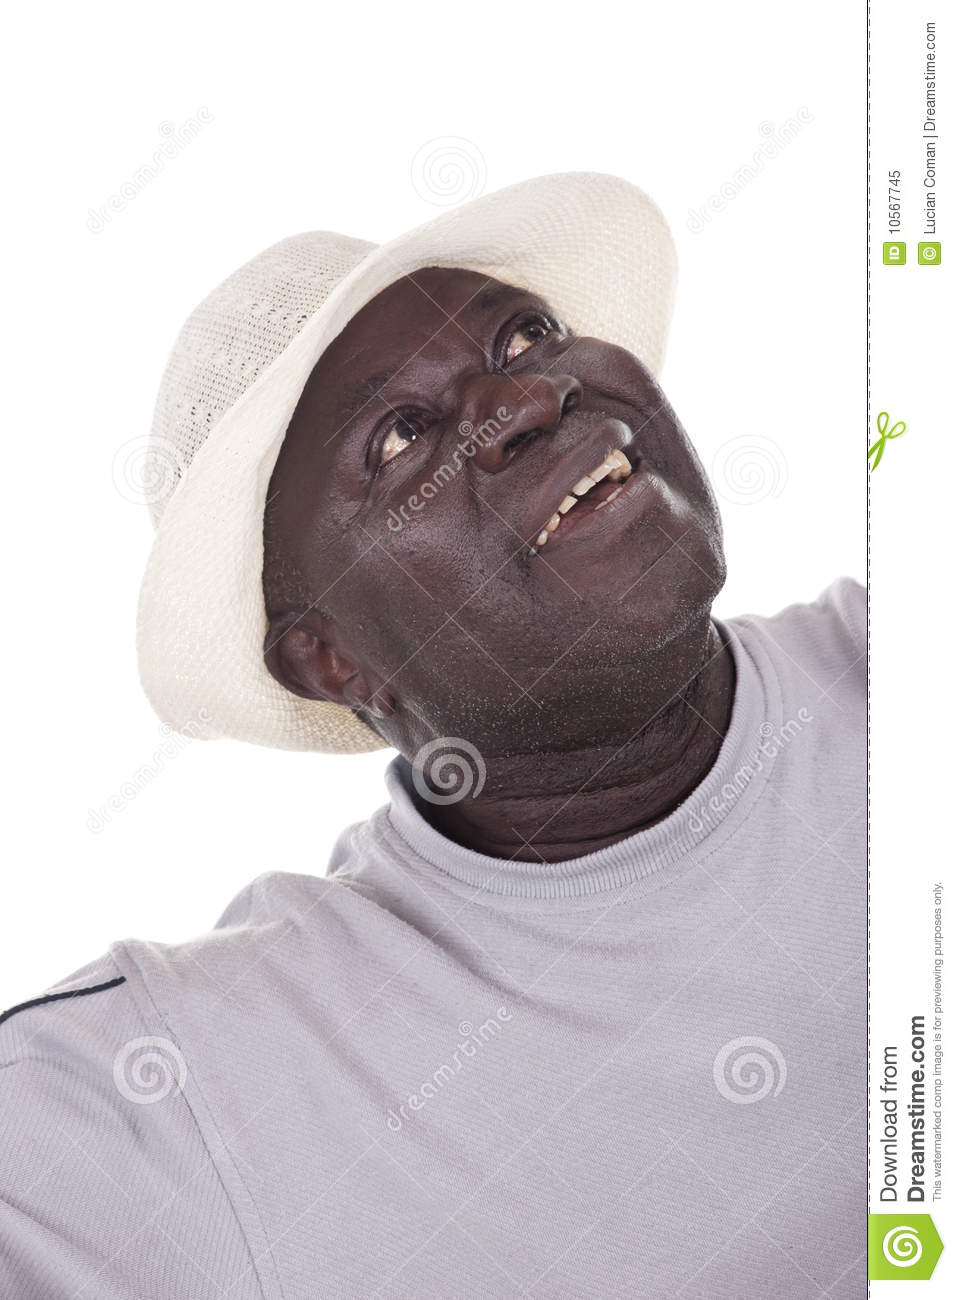 Wish You Happy Retirement Senior African American Man With White